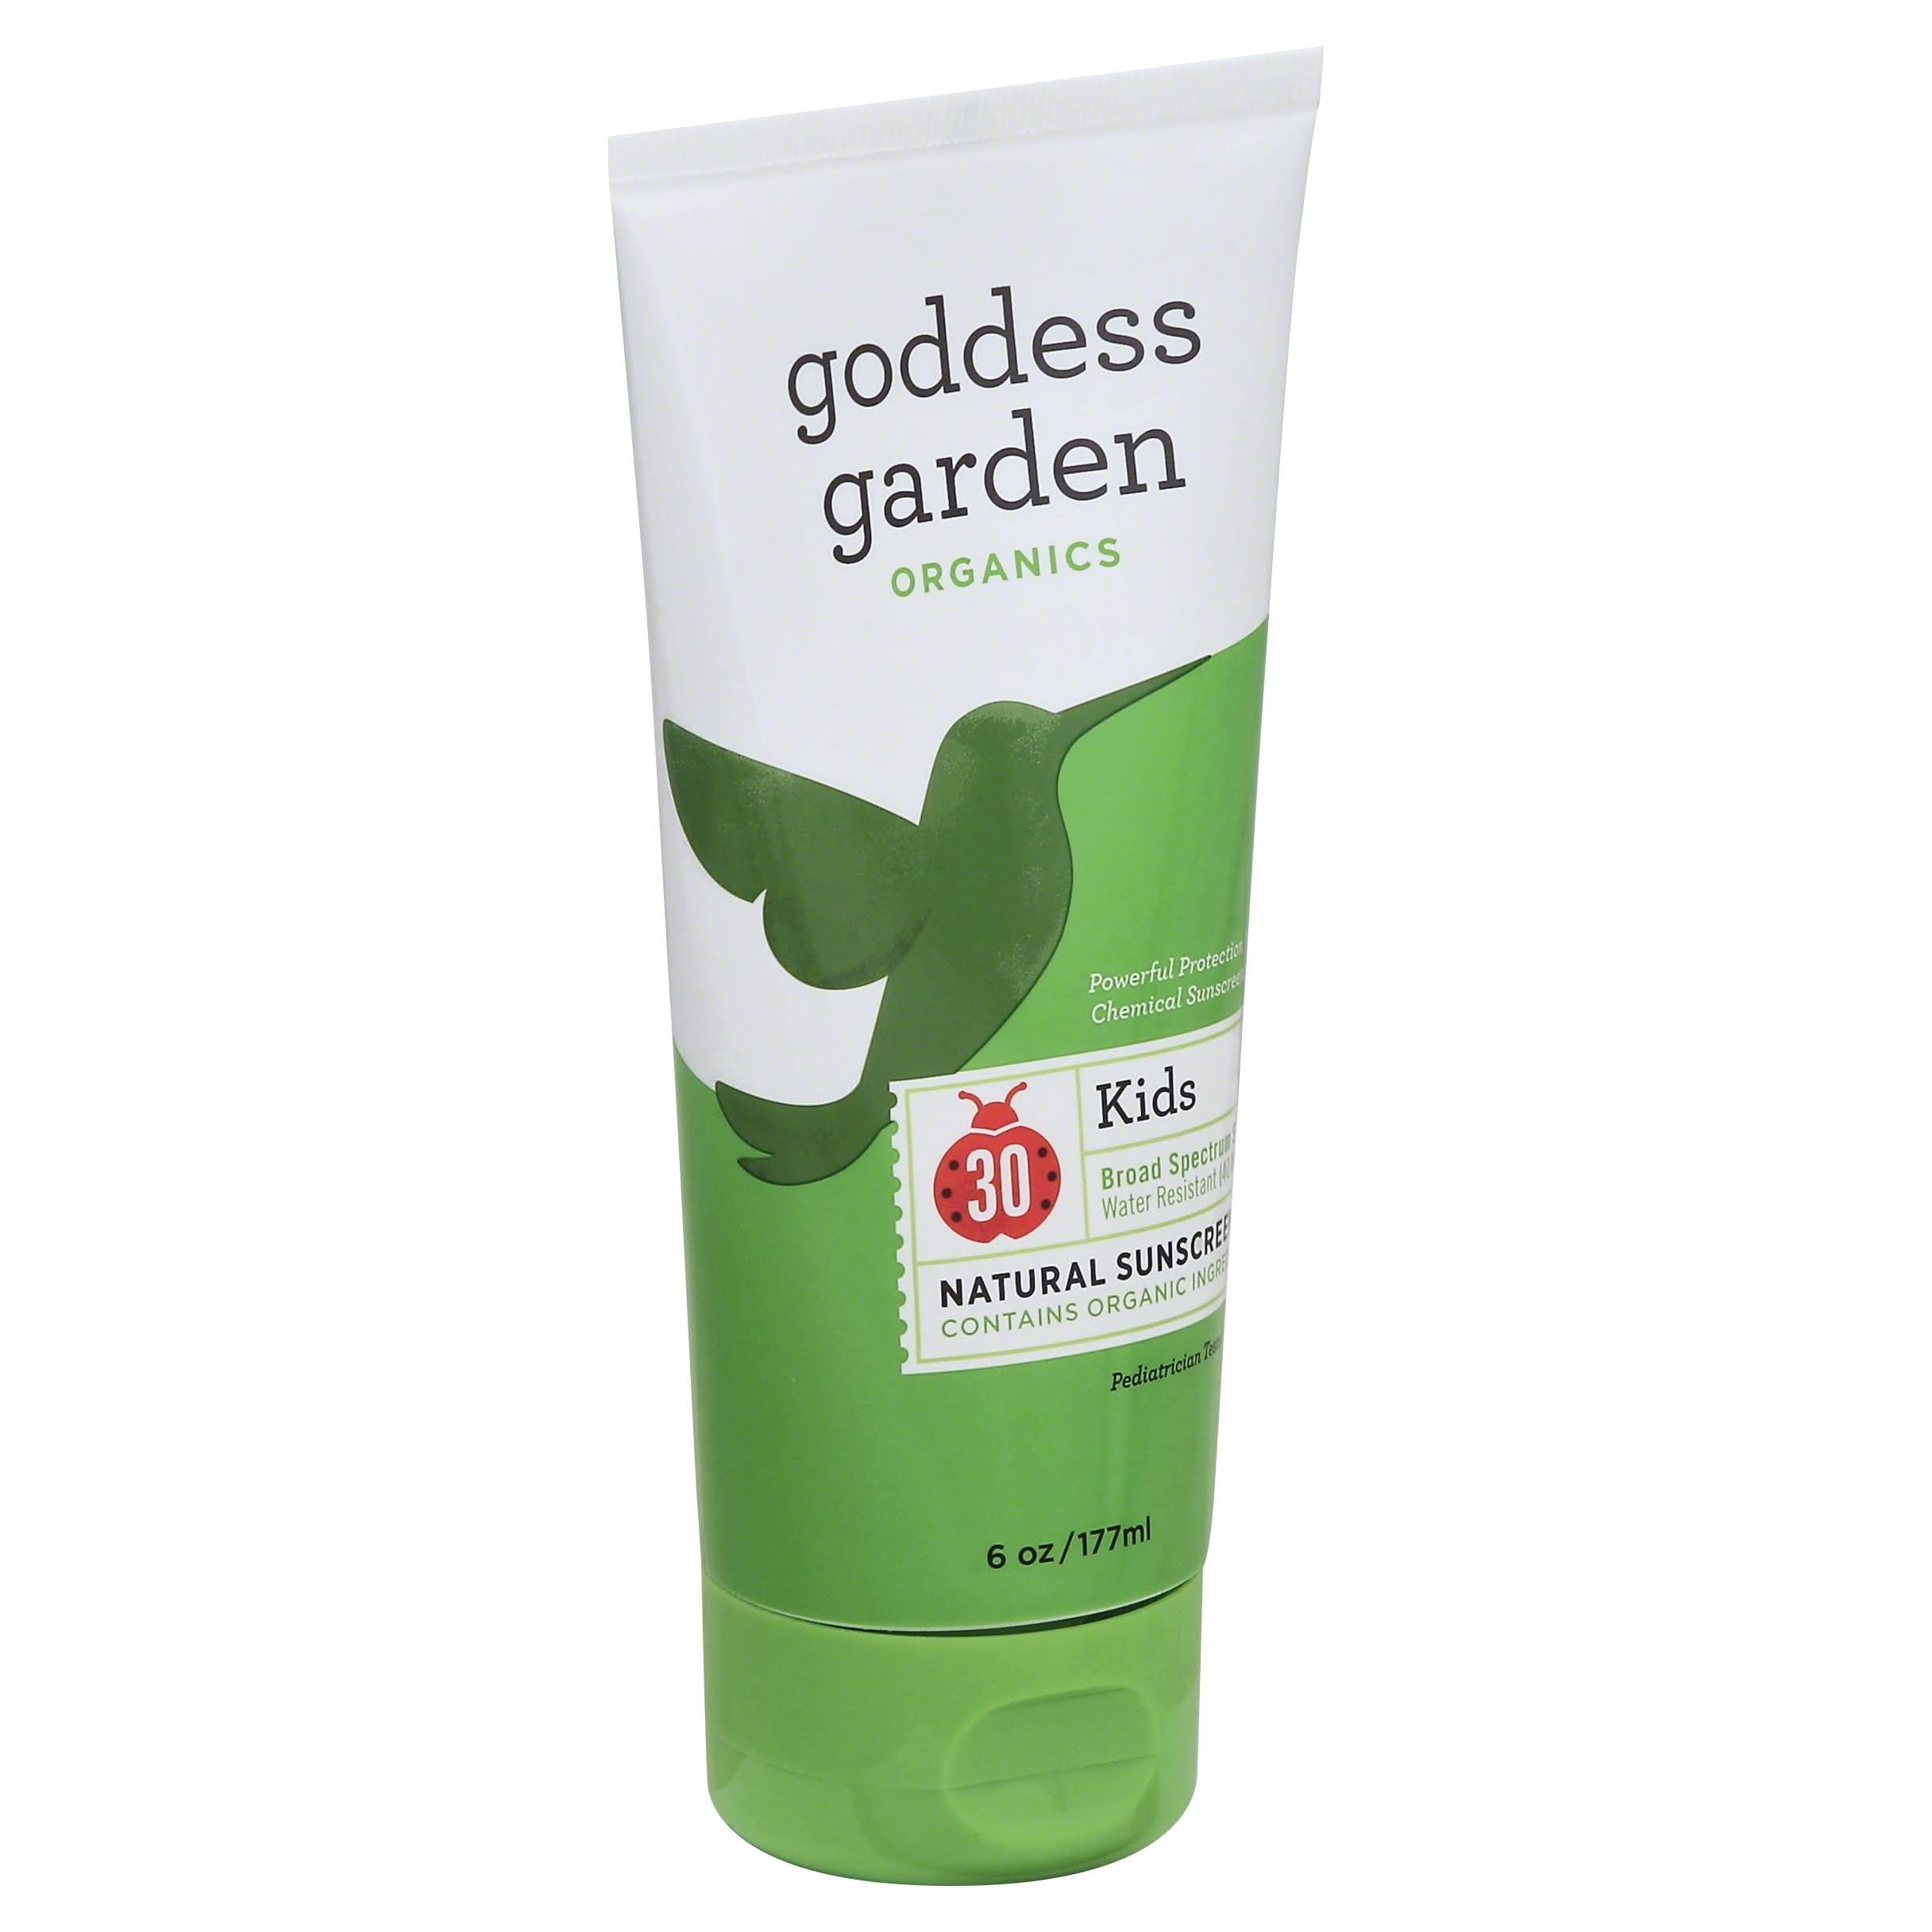 Goddess Garden Sunny Kids Natural Sunscreen - SPF 30, 6oz, 177ml